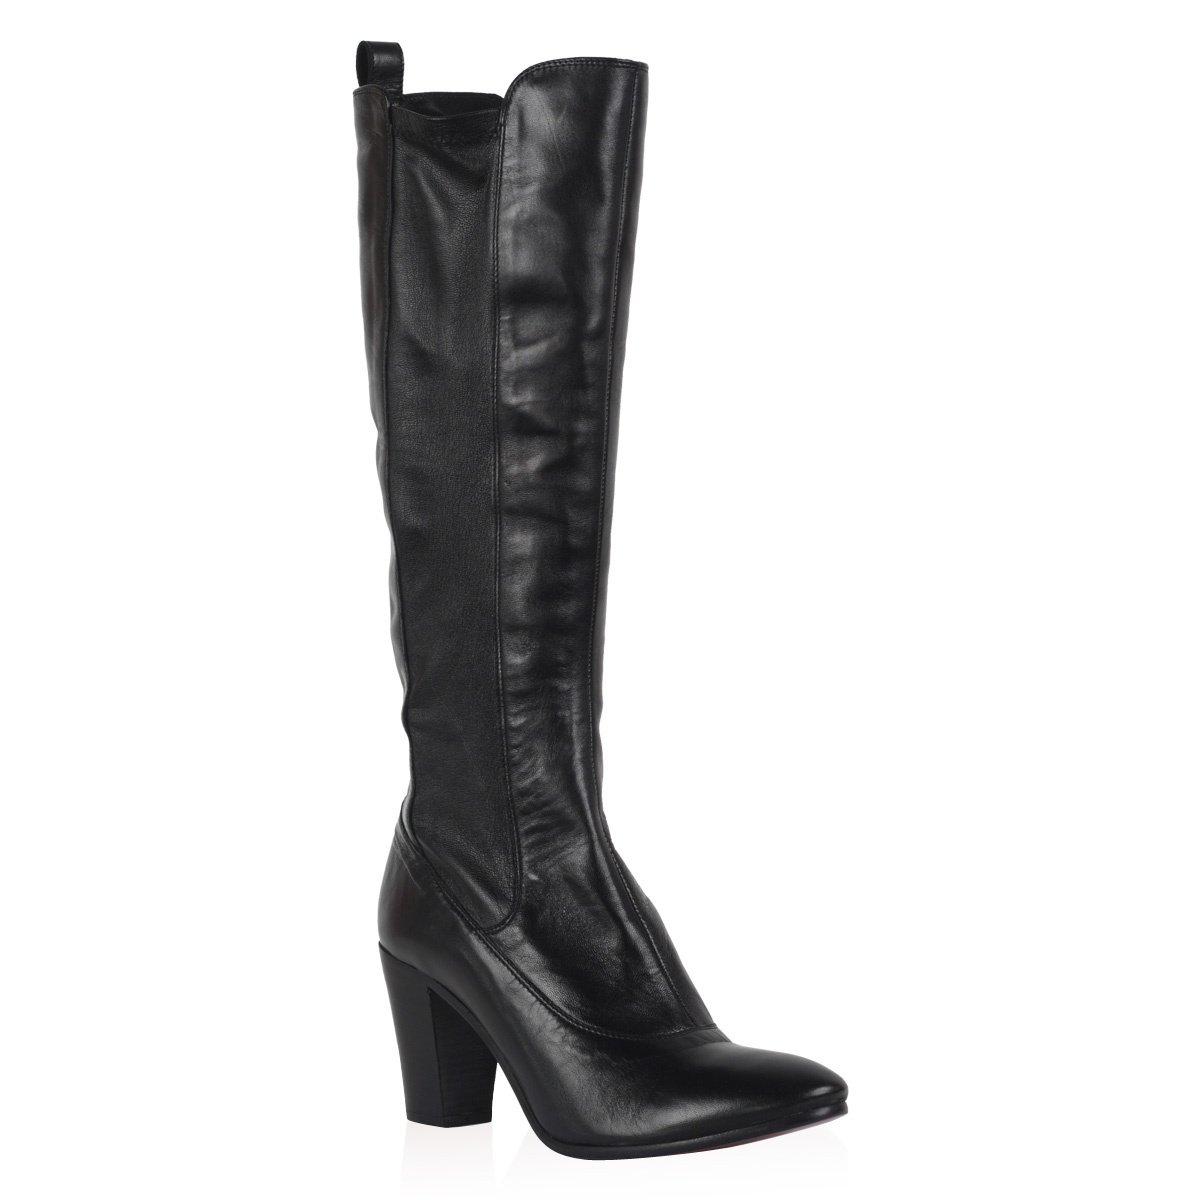 NEW-PIED-A-TERRE-LADIES-PARLE-WOMENS-BLACK-BLOCK-HEEL-KNEE-HIGH-BOOTS-SIZE-3-8